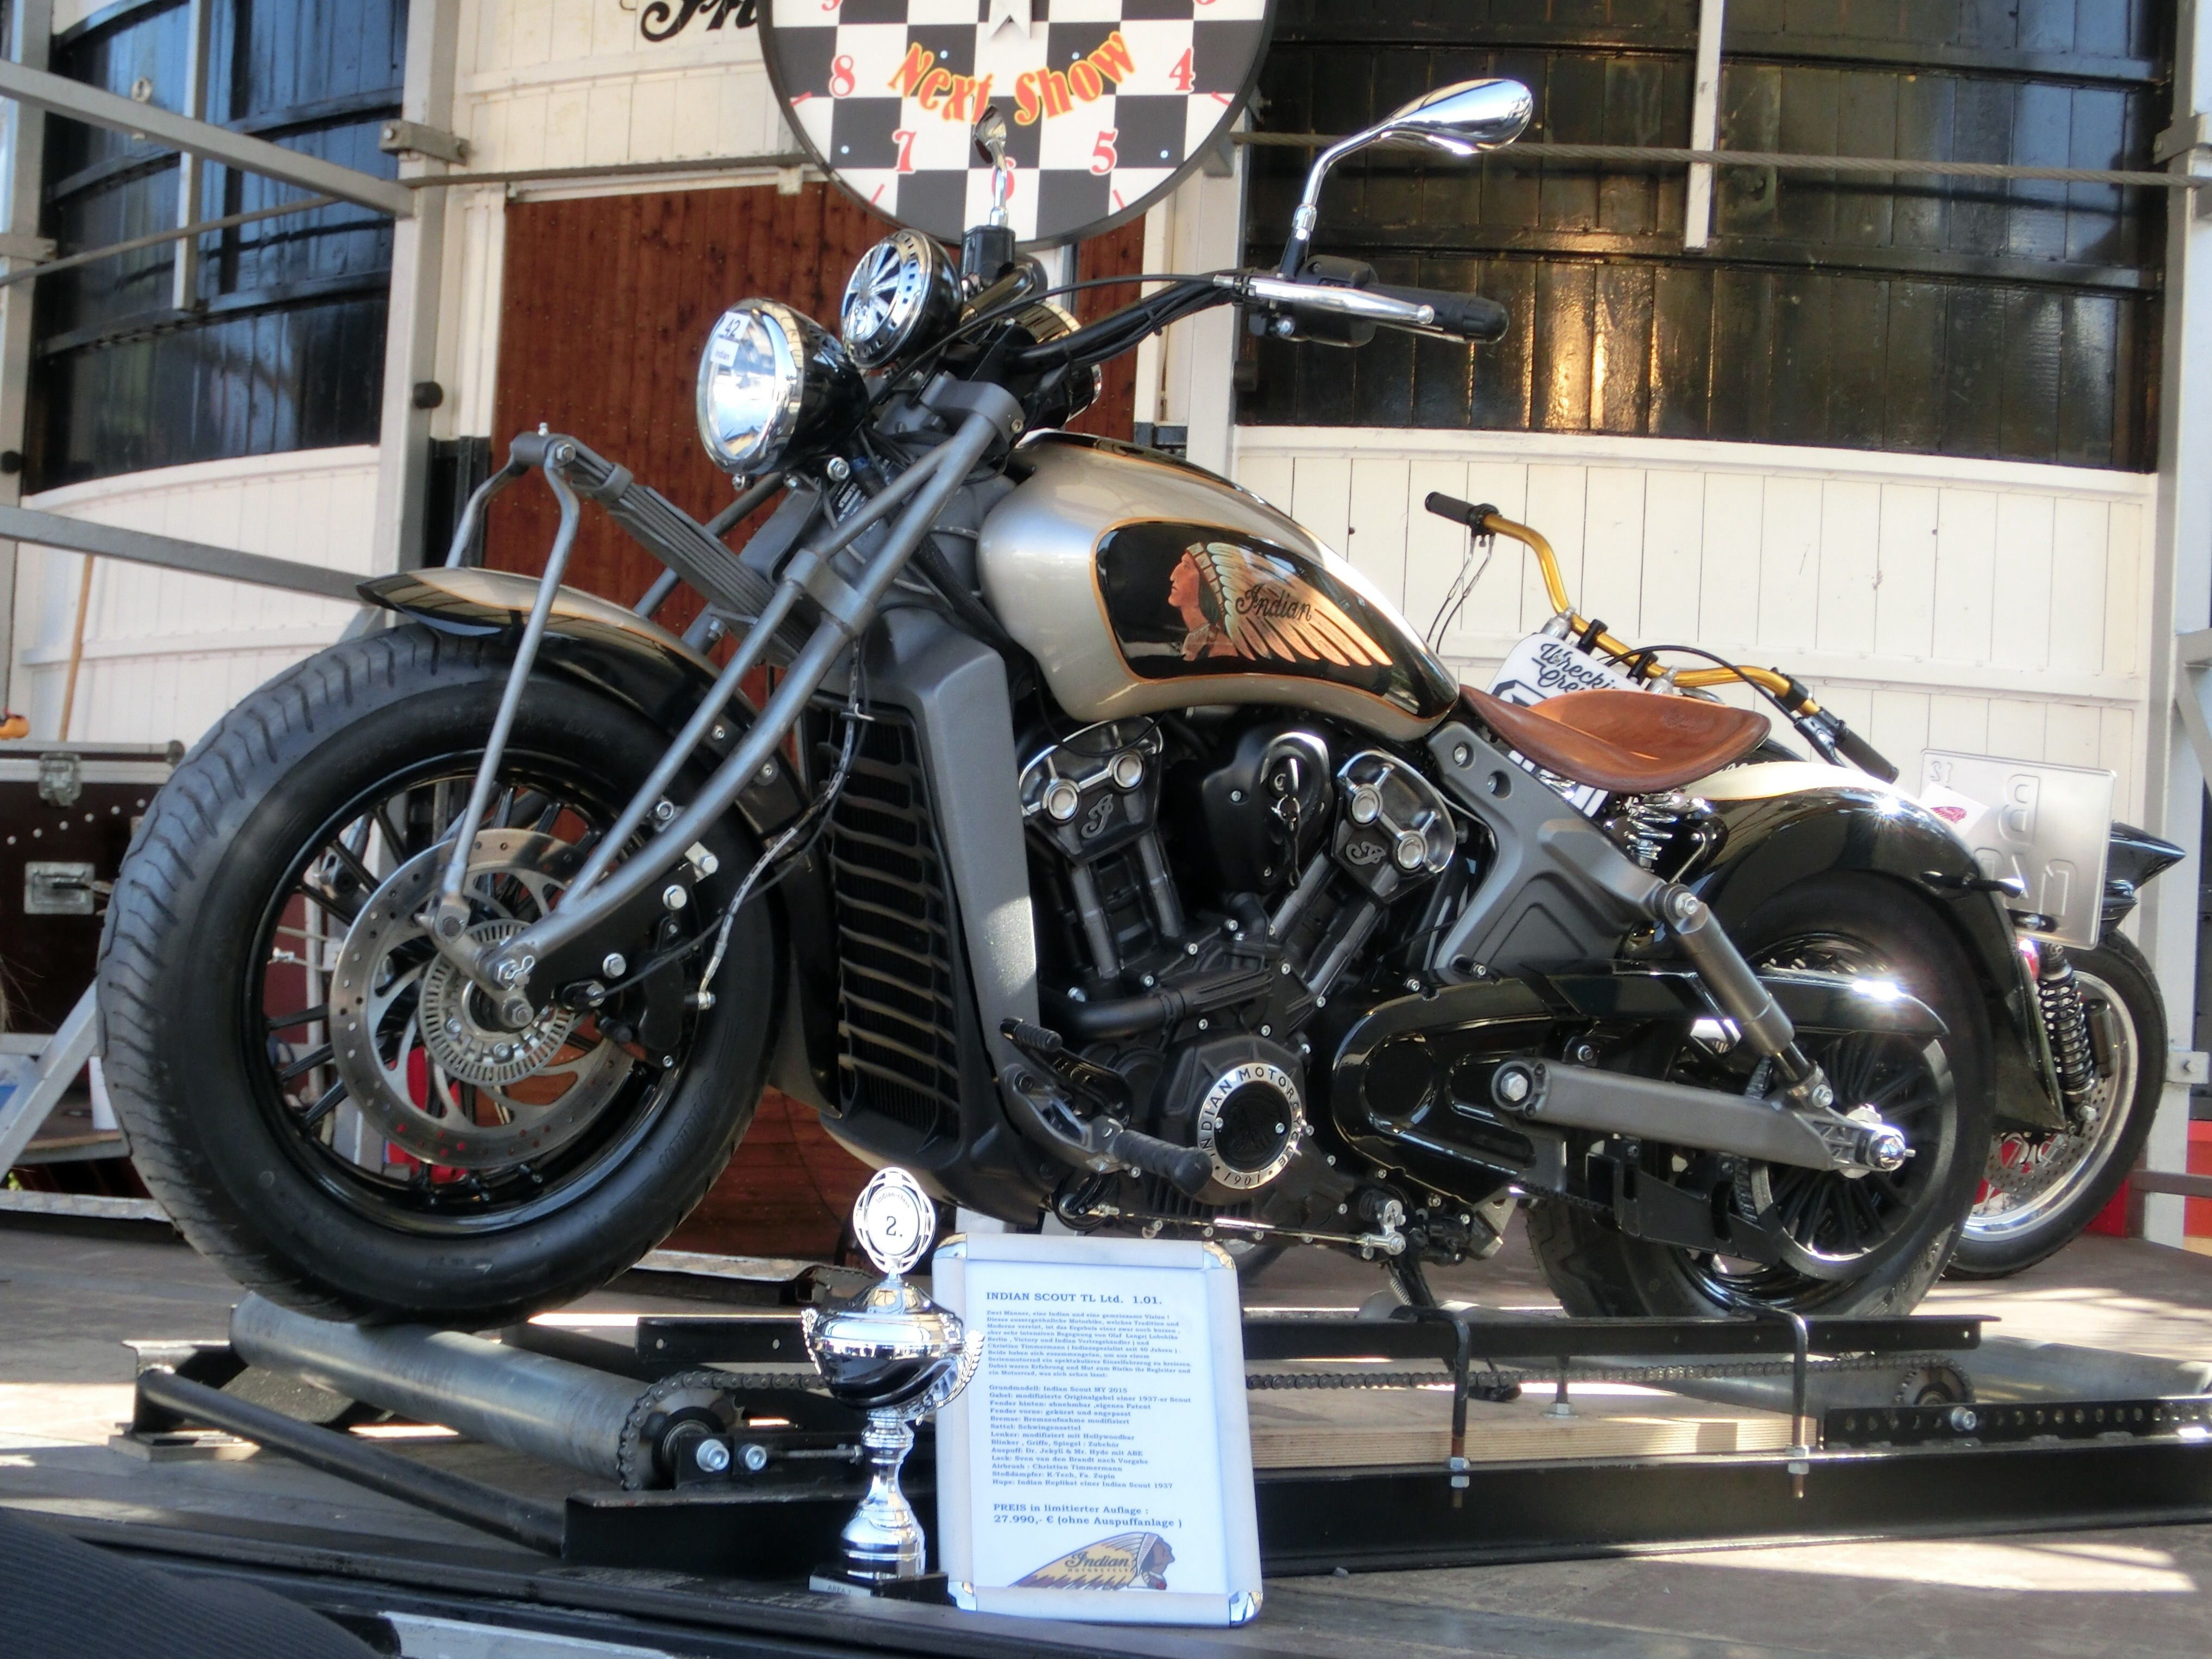 image.jpg Indian scout, Indian motorcycle, Scout